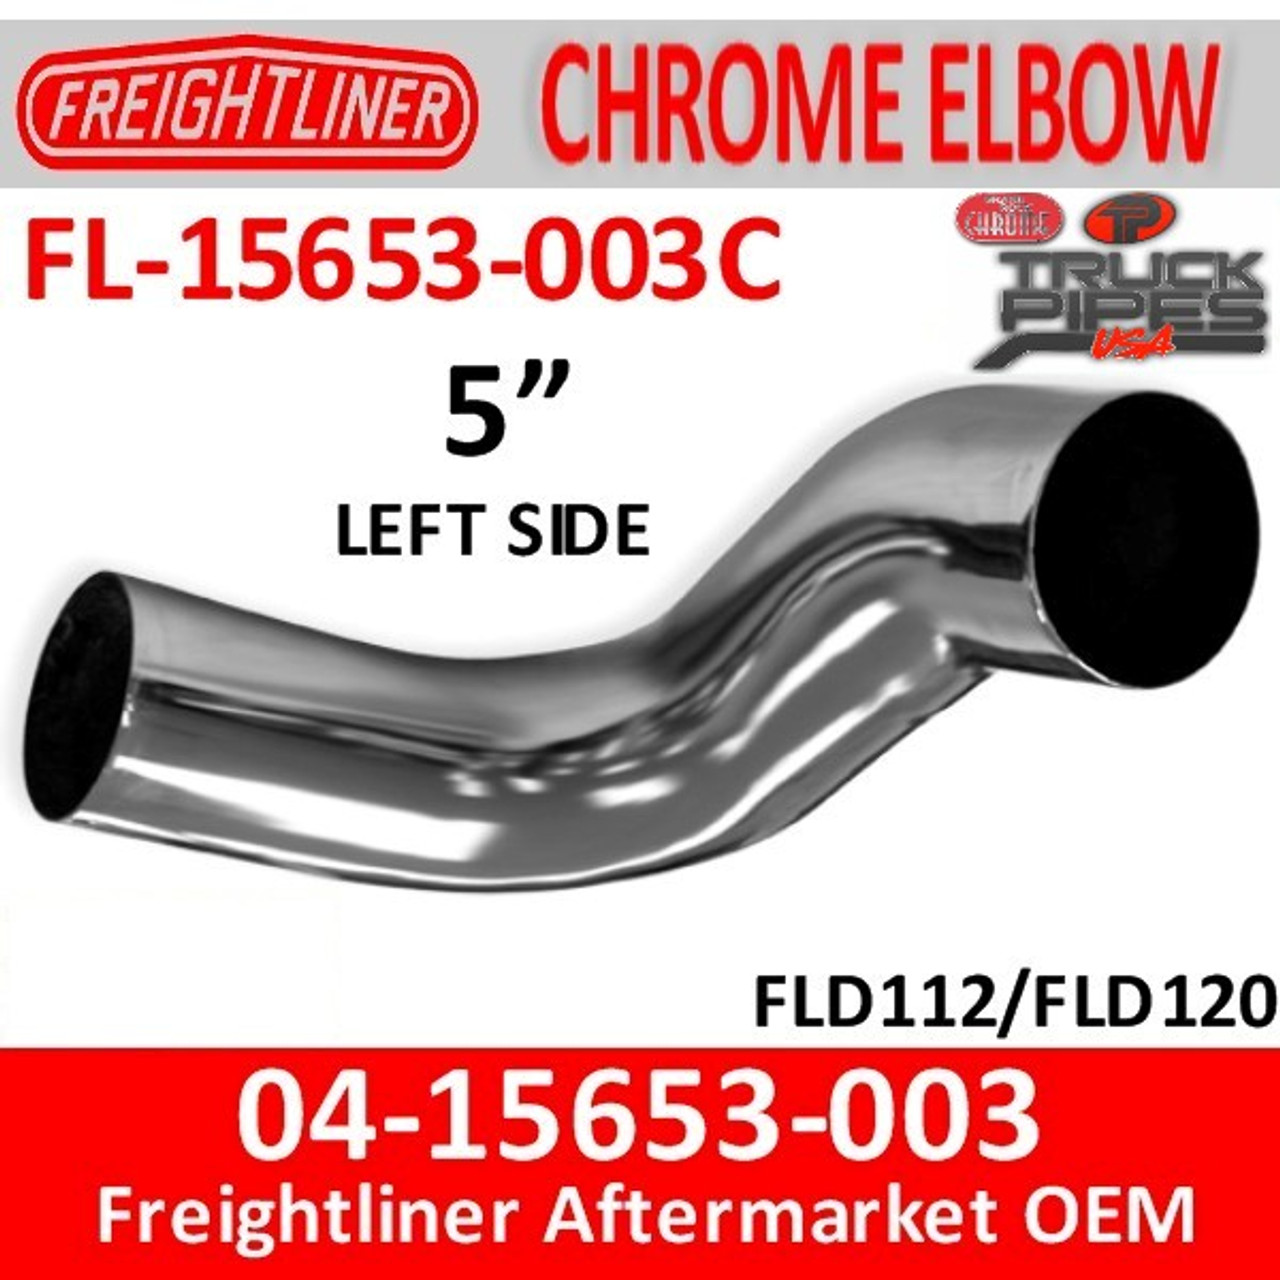 04-15653-003C Freightliner Chrome Left Exhaust Elbow FL-15653-003C